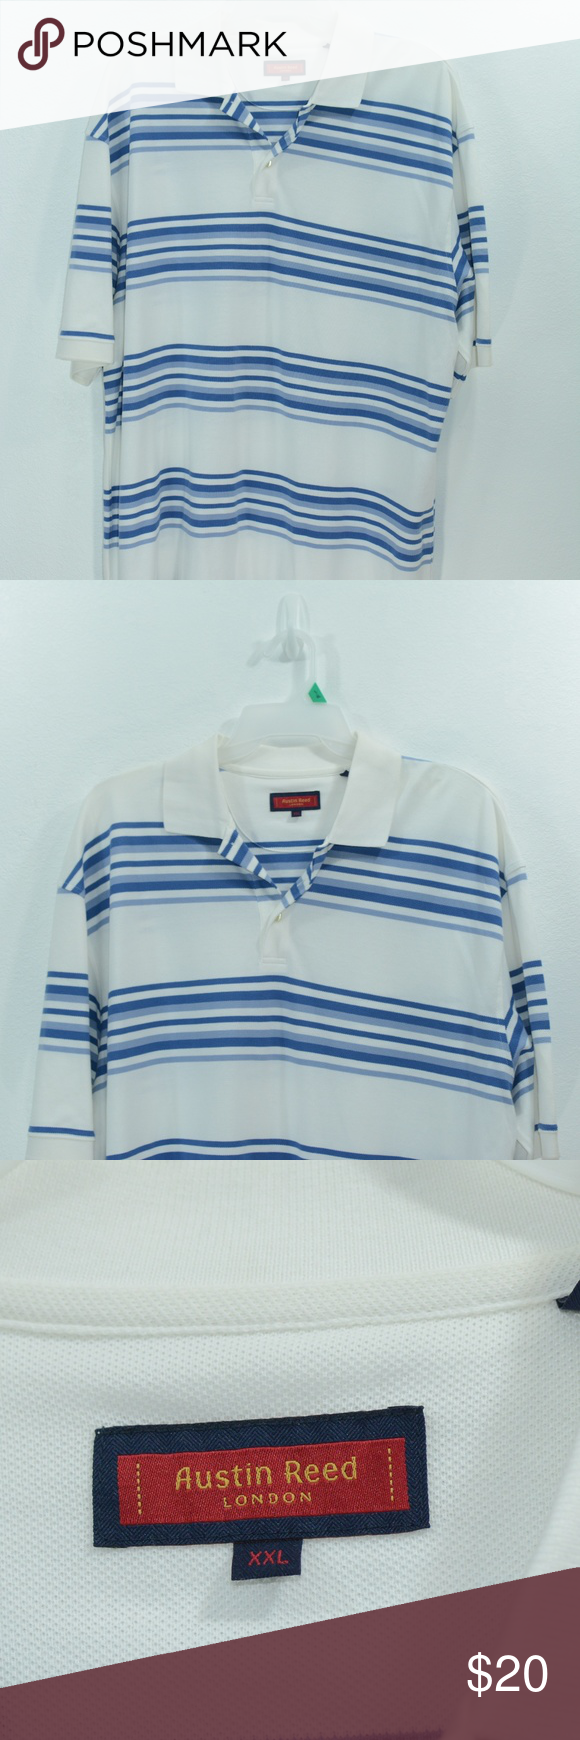 Austin Reed London Mens Polo Shirt White Blue Xxl Nwt 100 Cotton Approximate Measurements Waist 28 Inches Polo Shirt White Shirts White Men S Polo Shirt